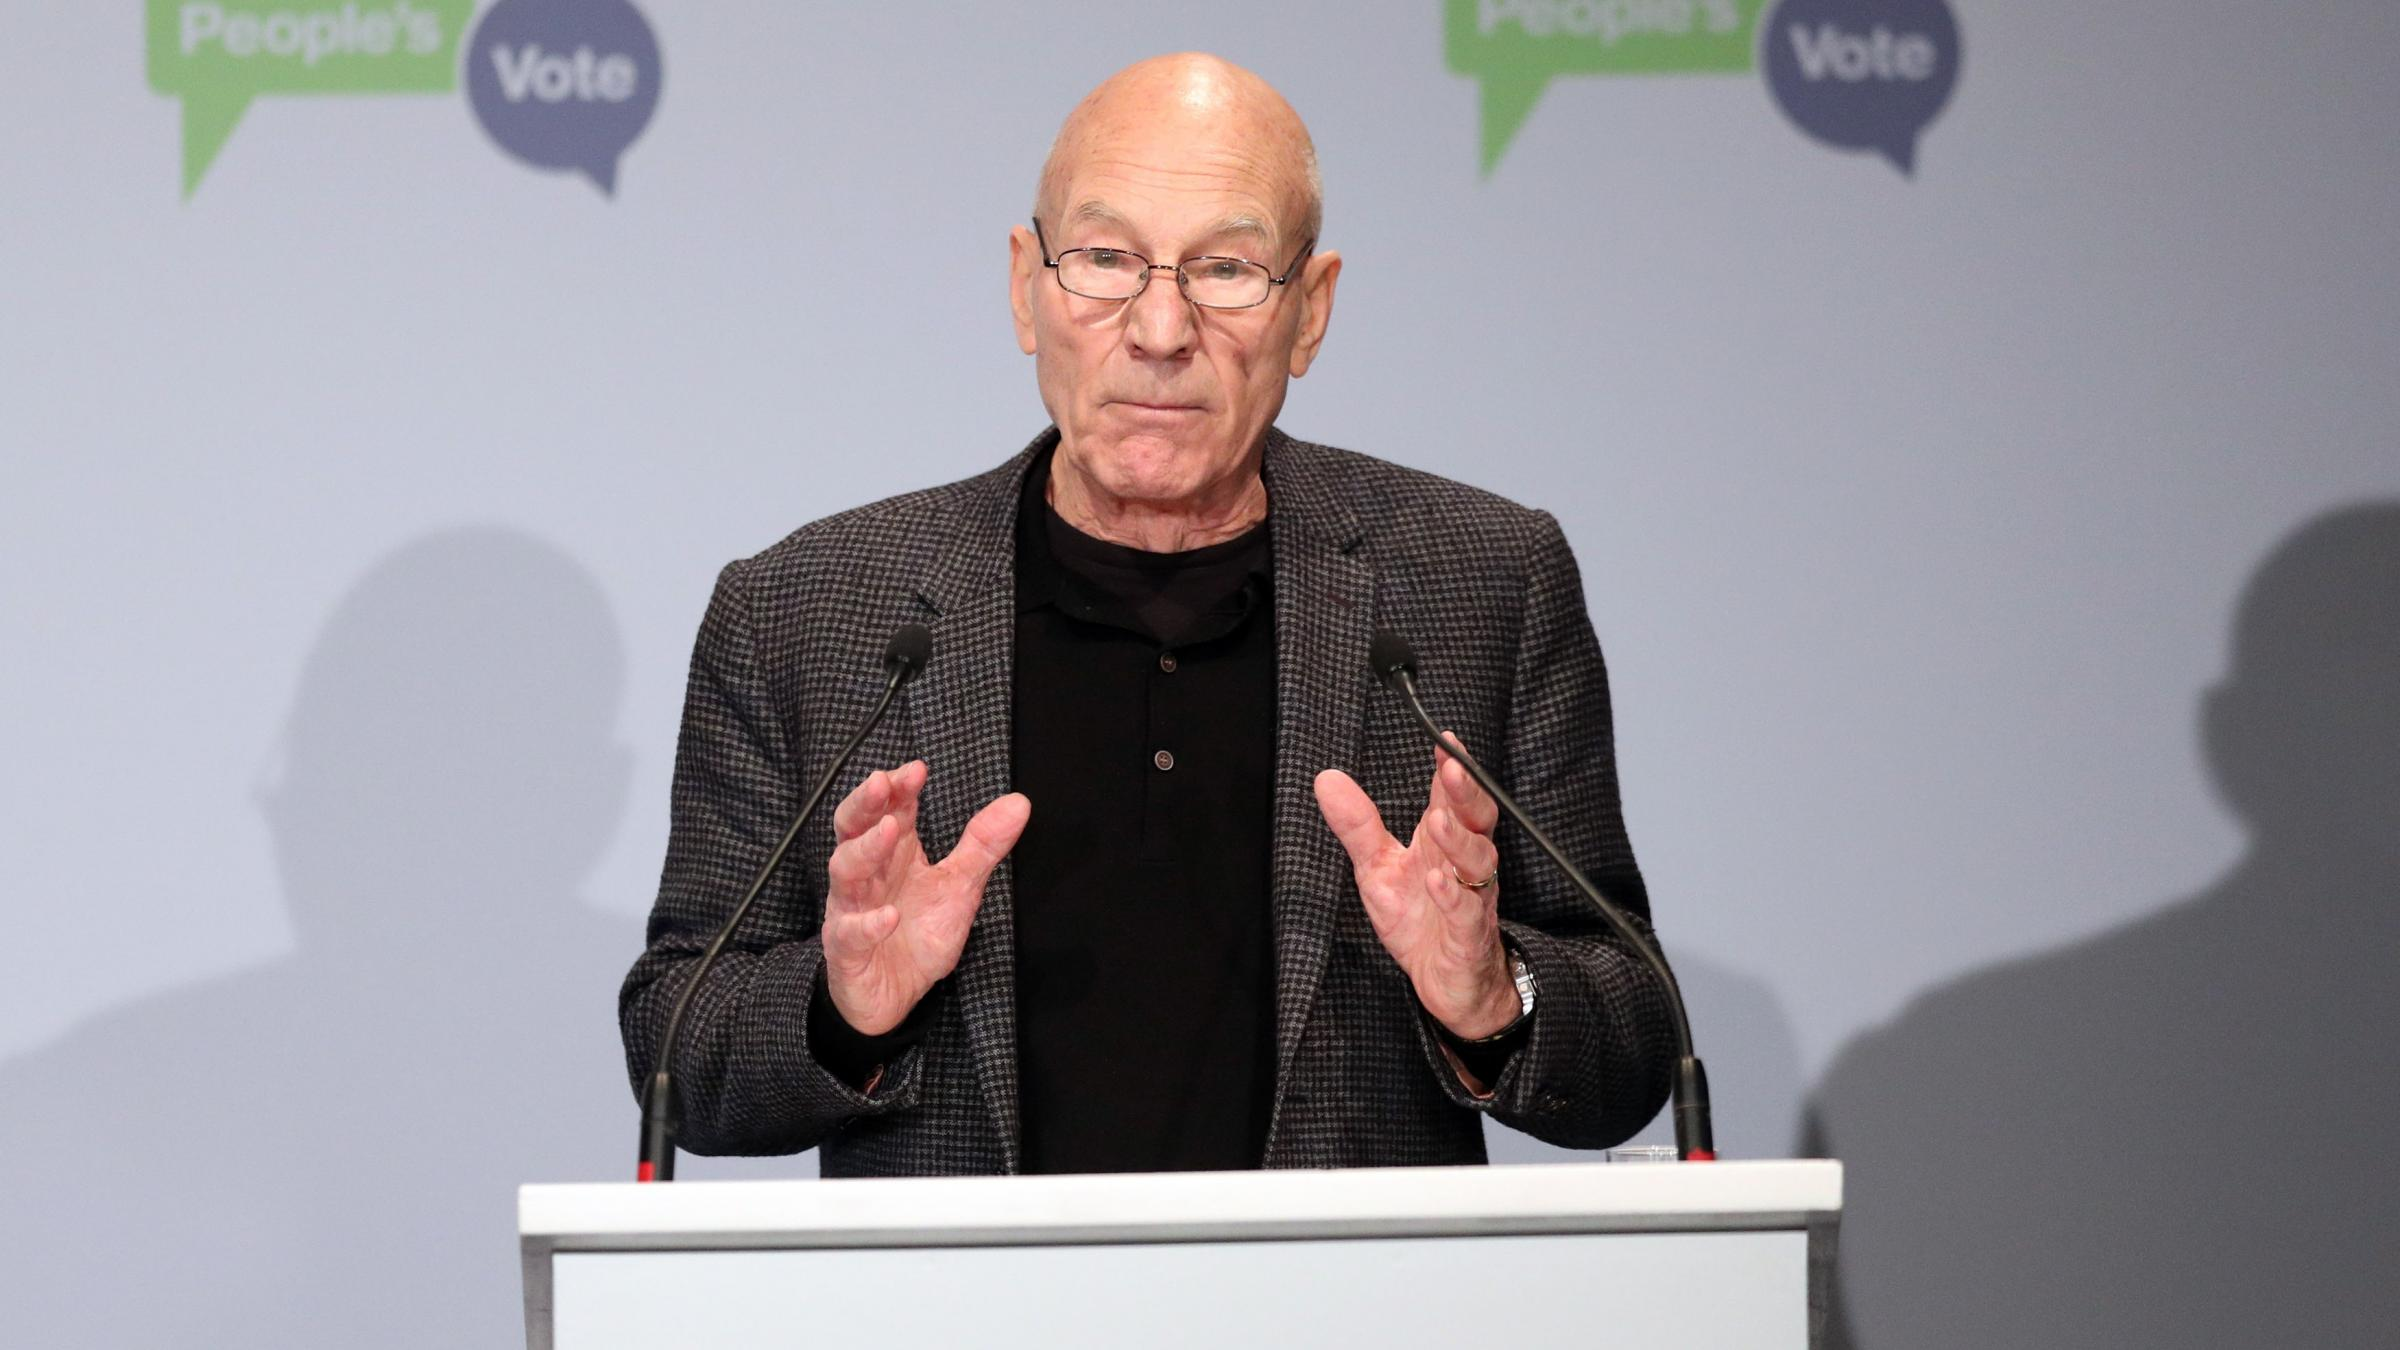 Sir Patrick Stewart lends voice to demands for another referendum